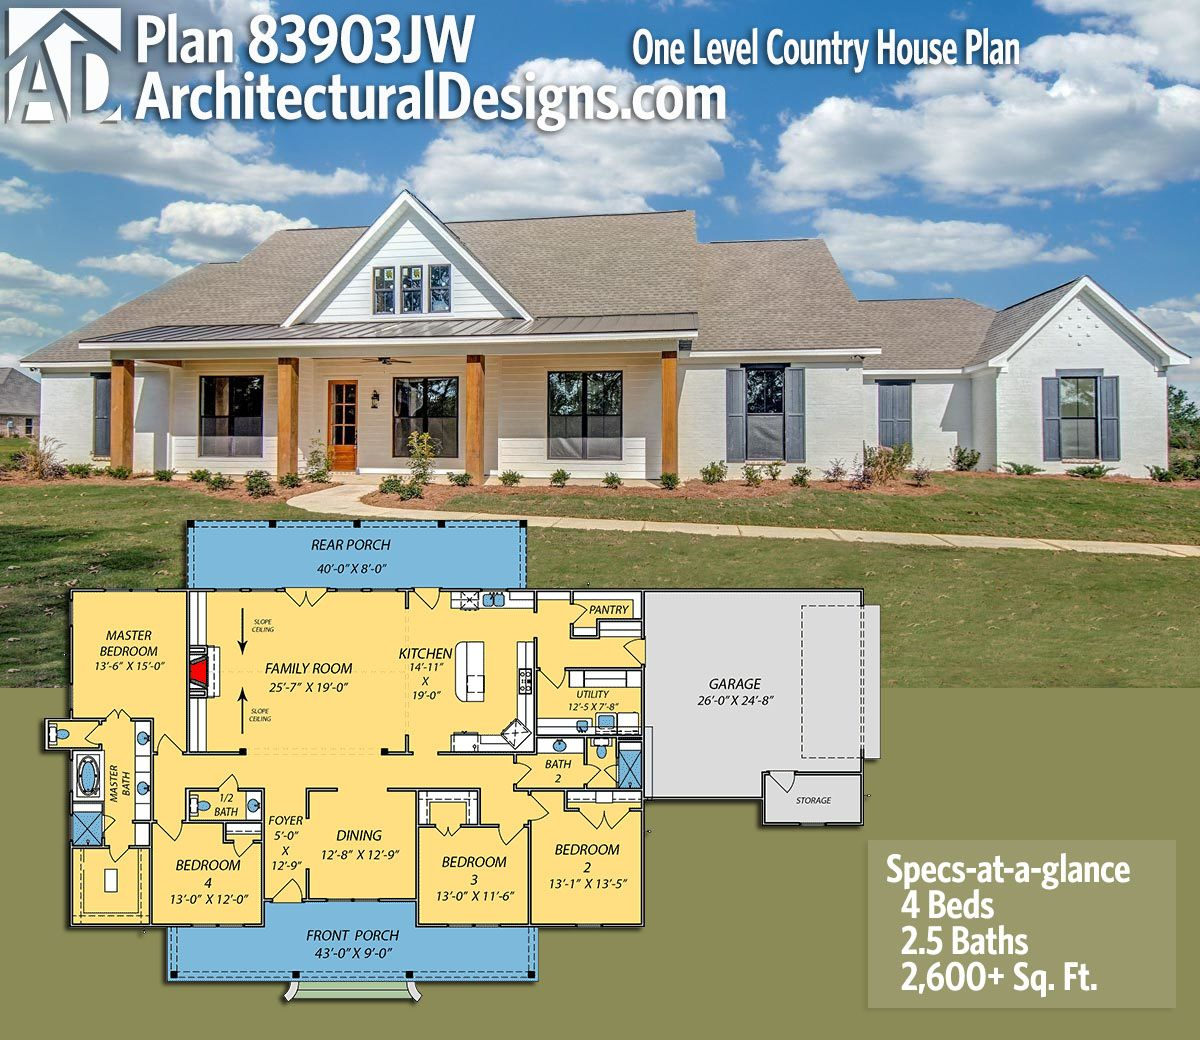 Plan 83903jw one level country house plan architectural for Architectural home plans